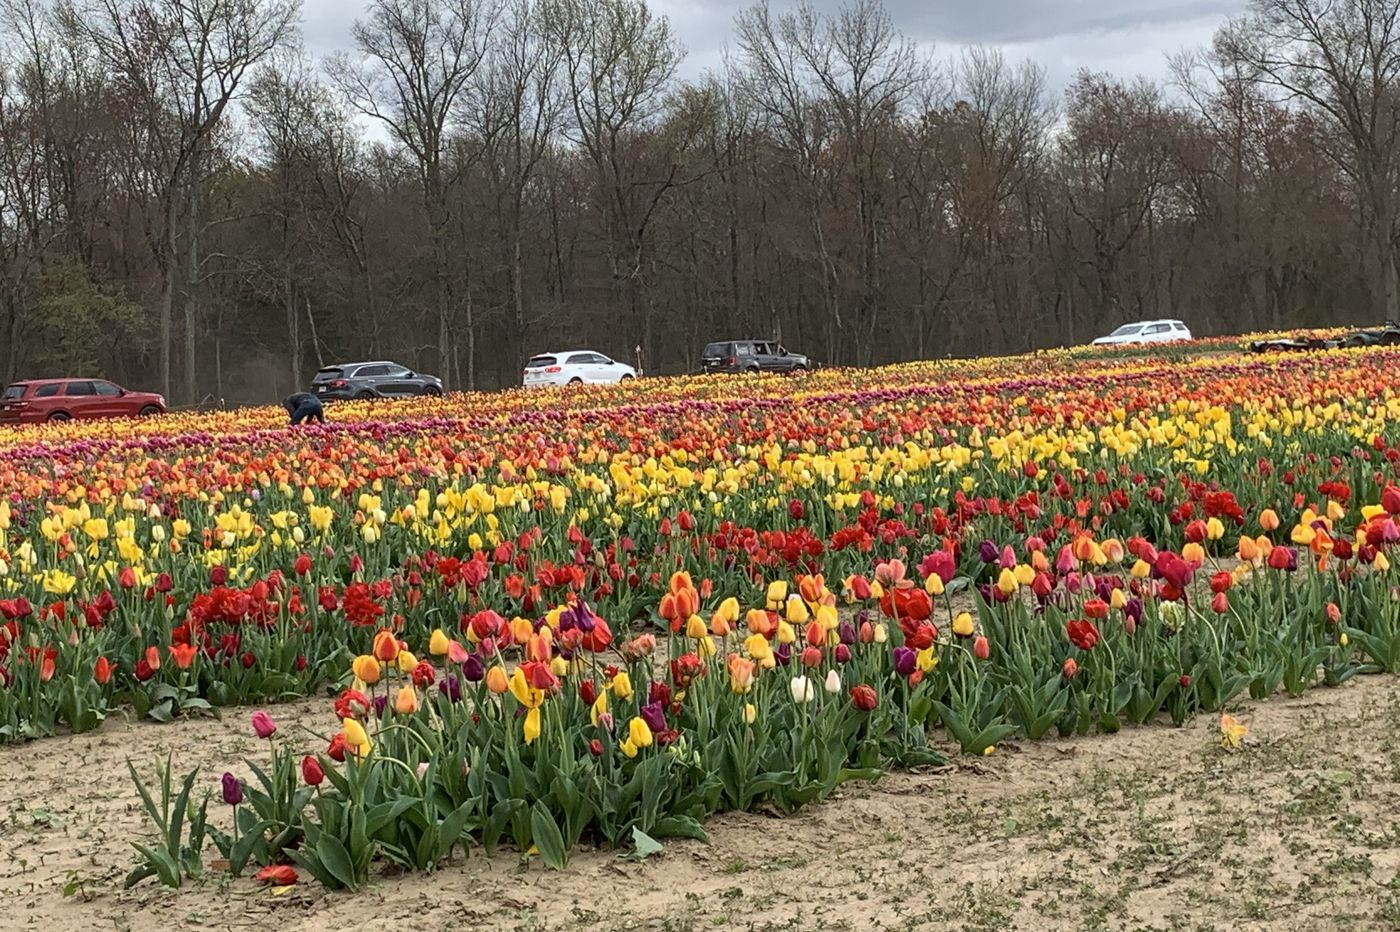 South Jersey Farm Ordered To Temporarily Stop Drive Through Tulip Tour